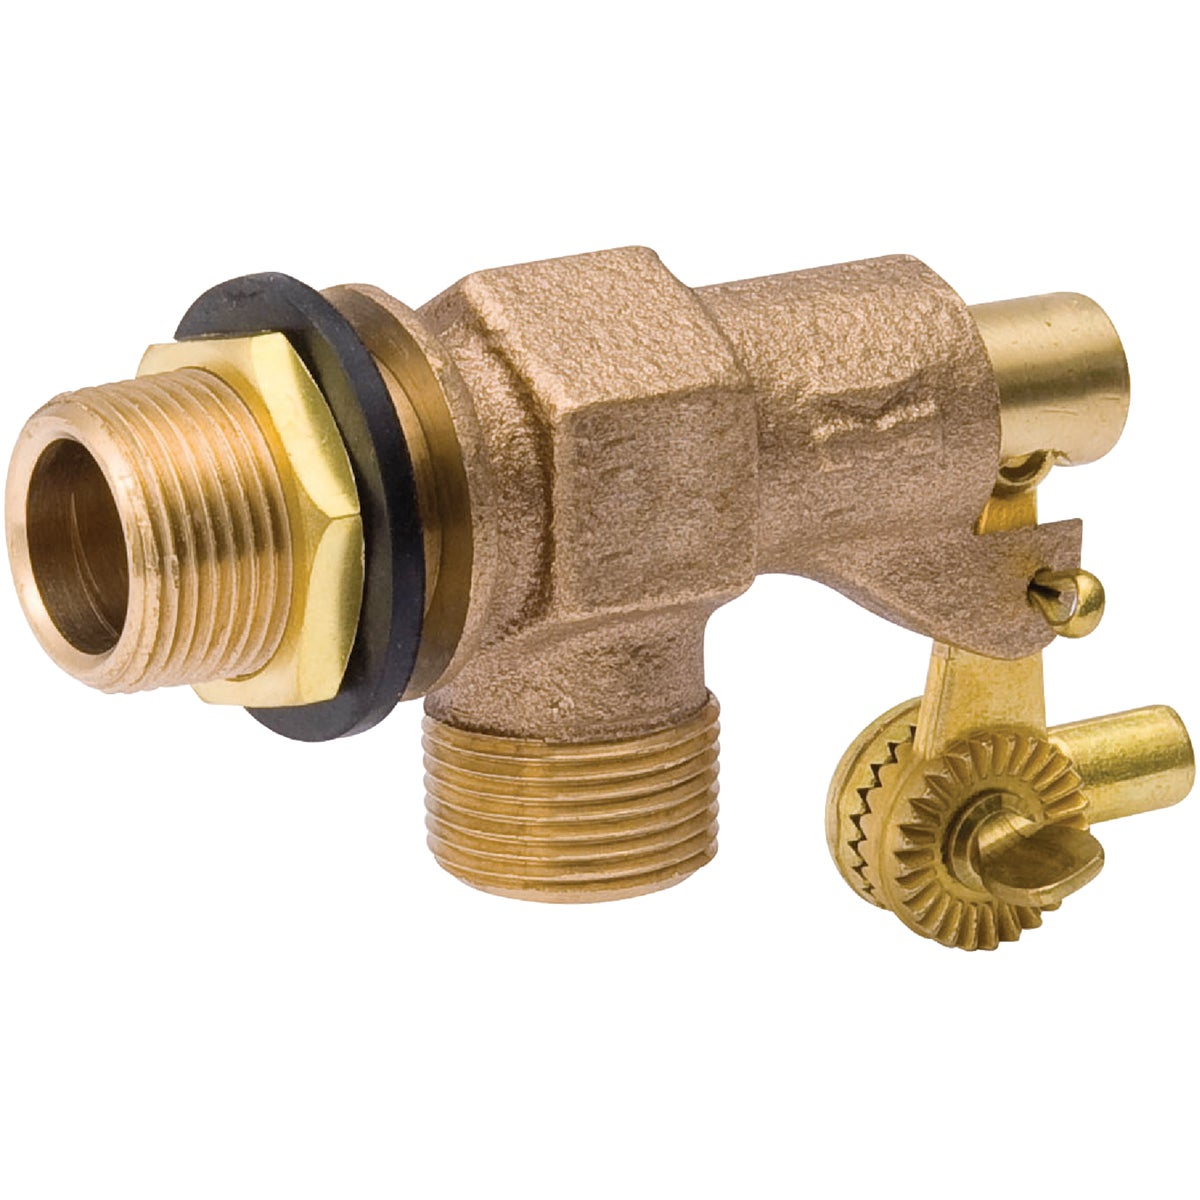 "1/2"" FLOAT VALVE - 109-813 by Mueller B K"